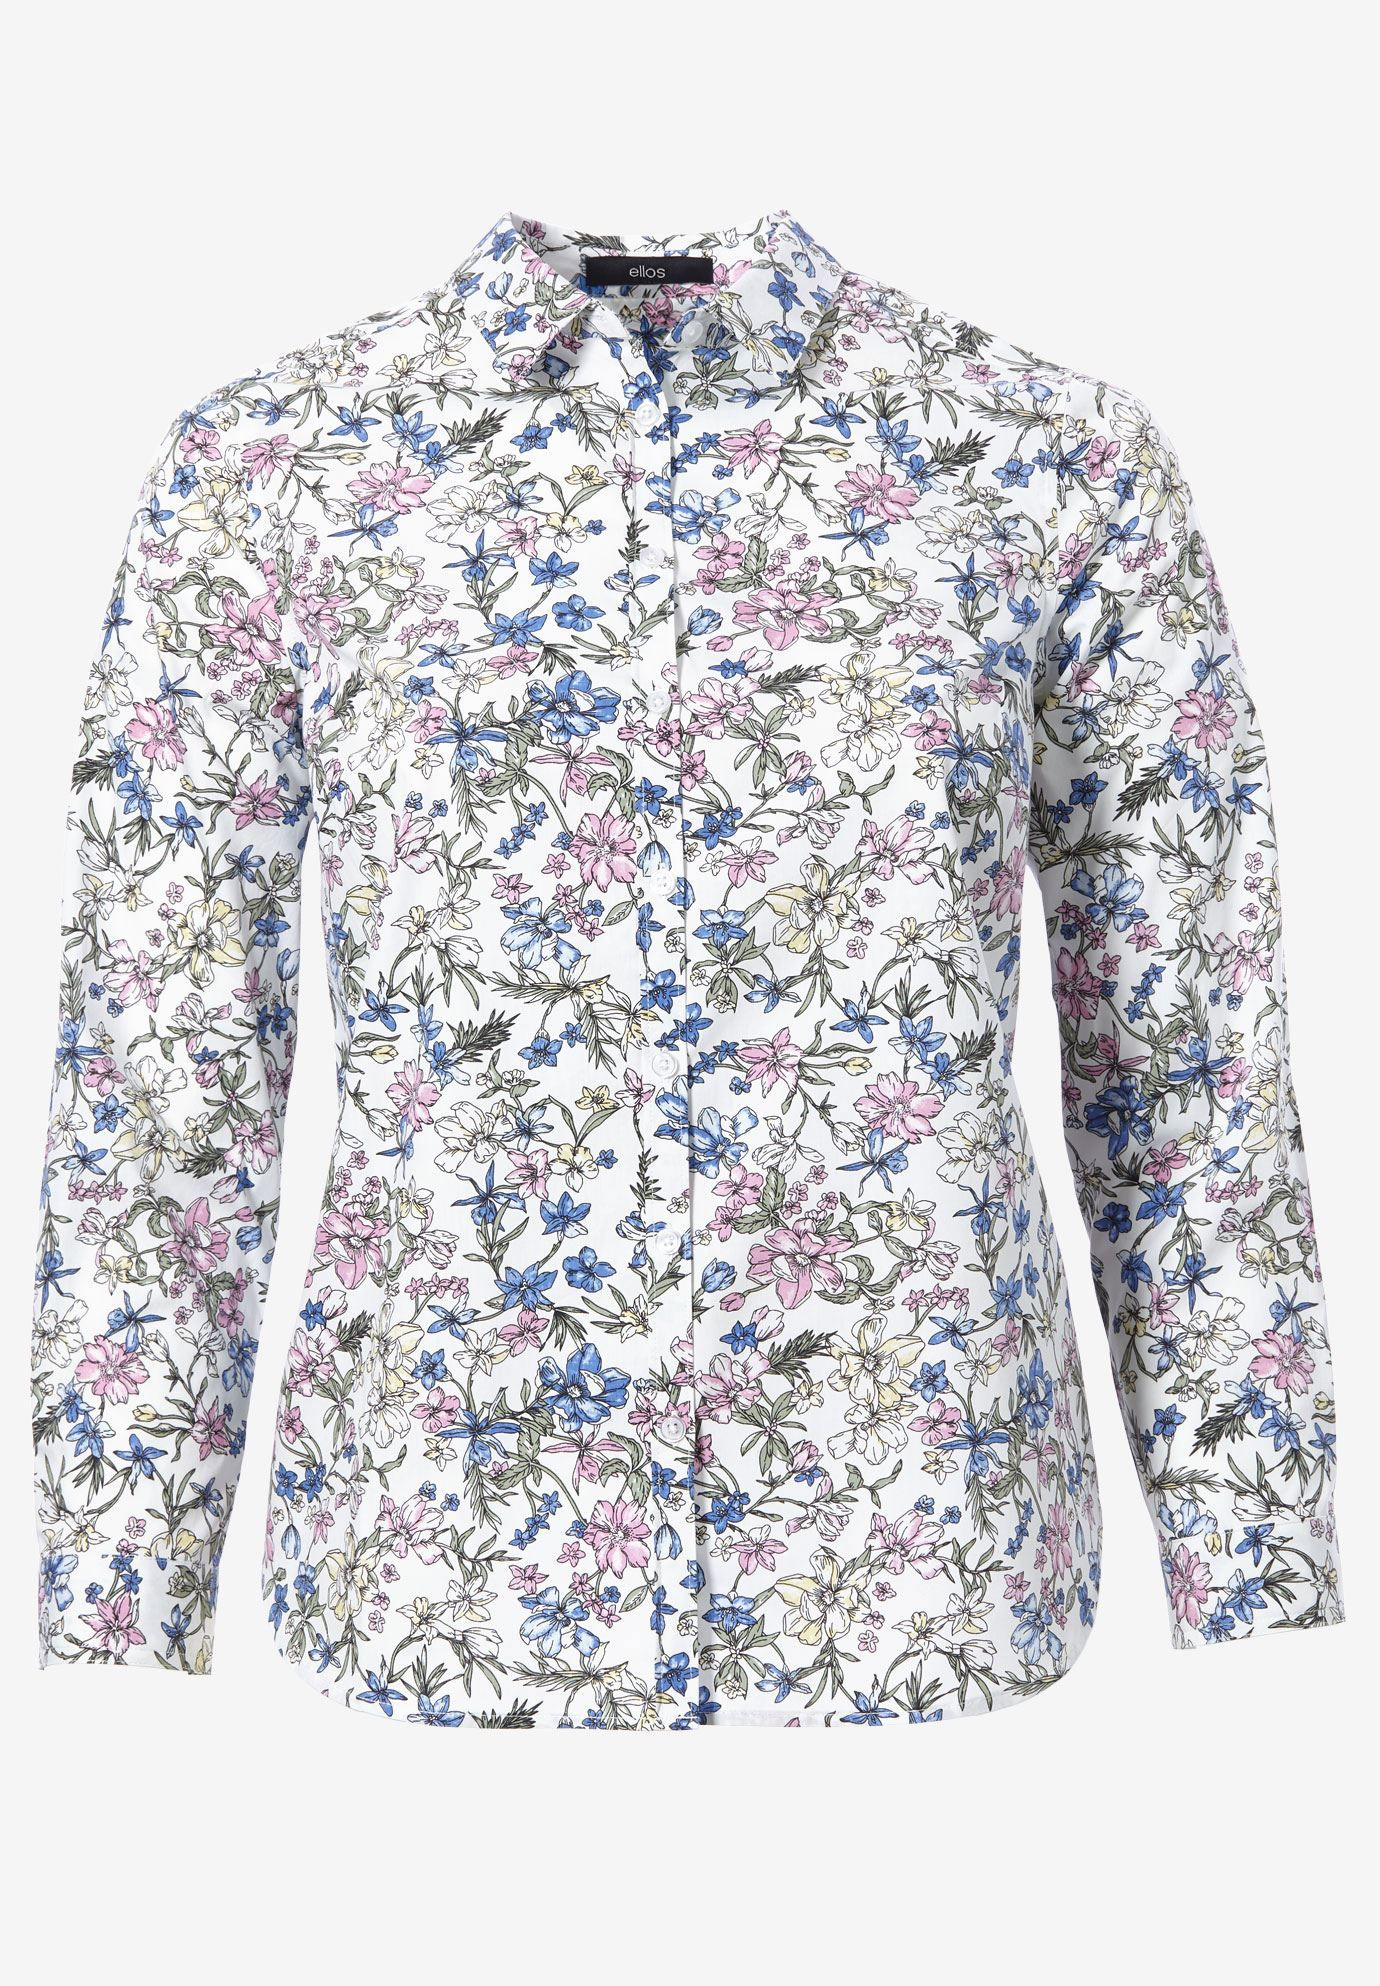 55295d8f Ellos Plus Size Clothing for Women. Emma Button-Down Shirt by ellos®, WHITE  MULTI FLORAL